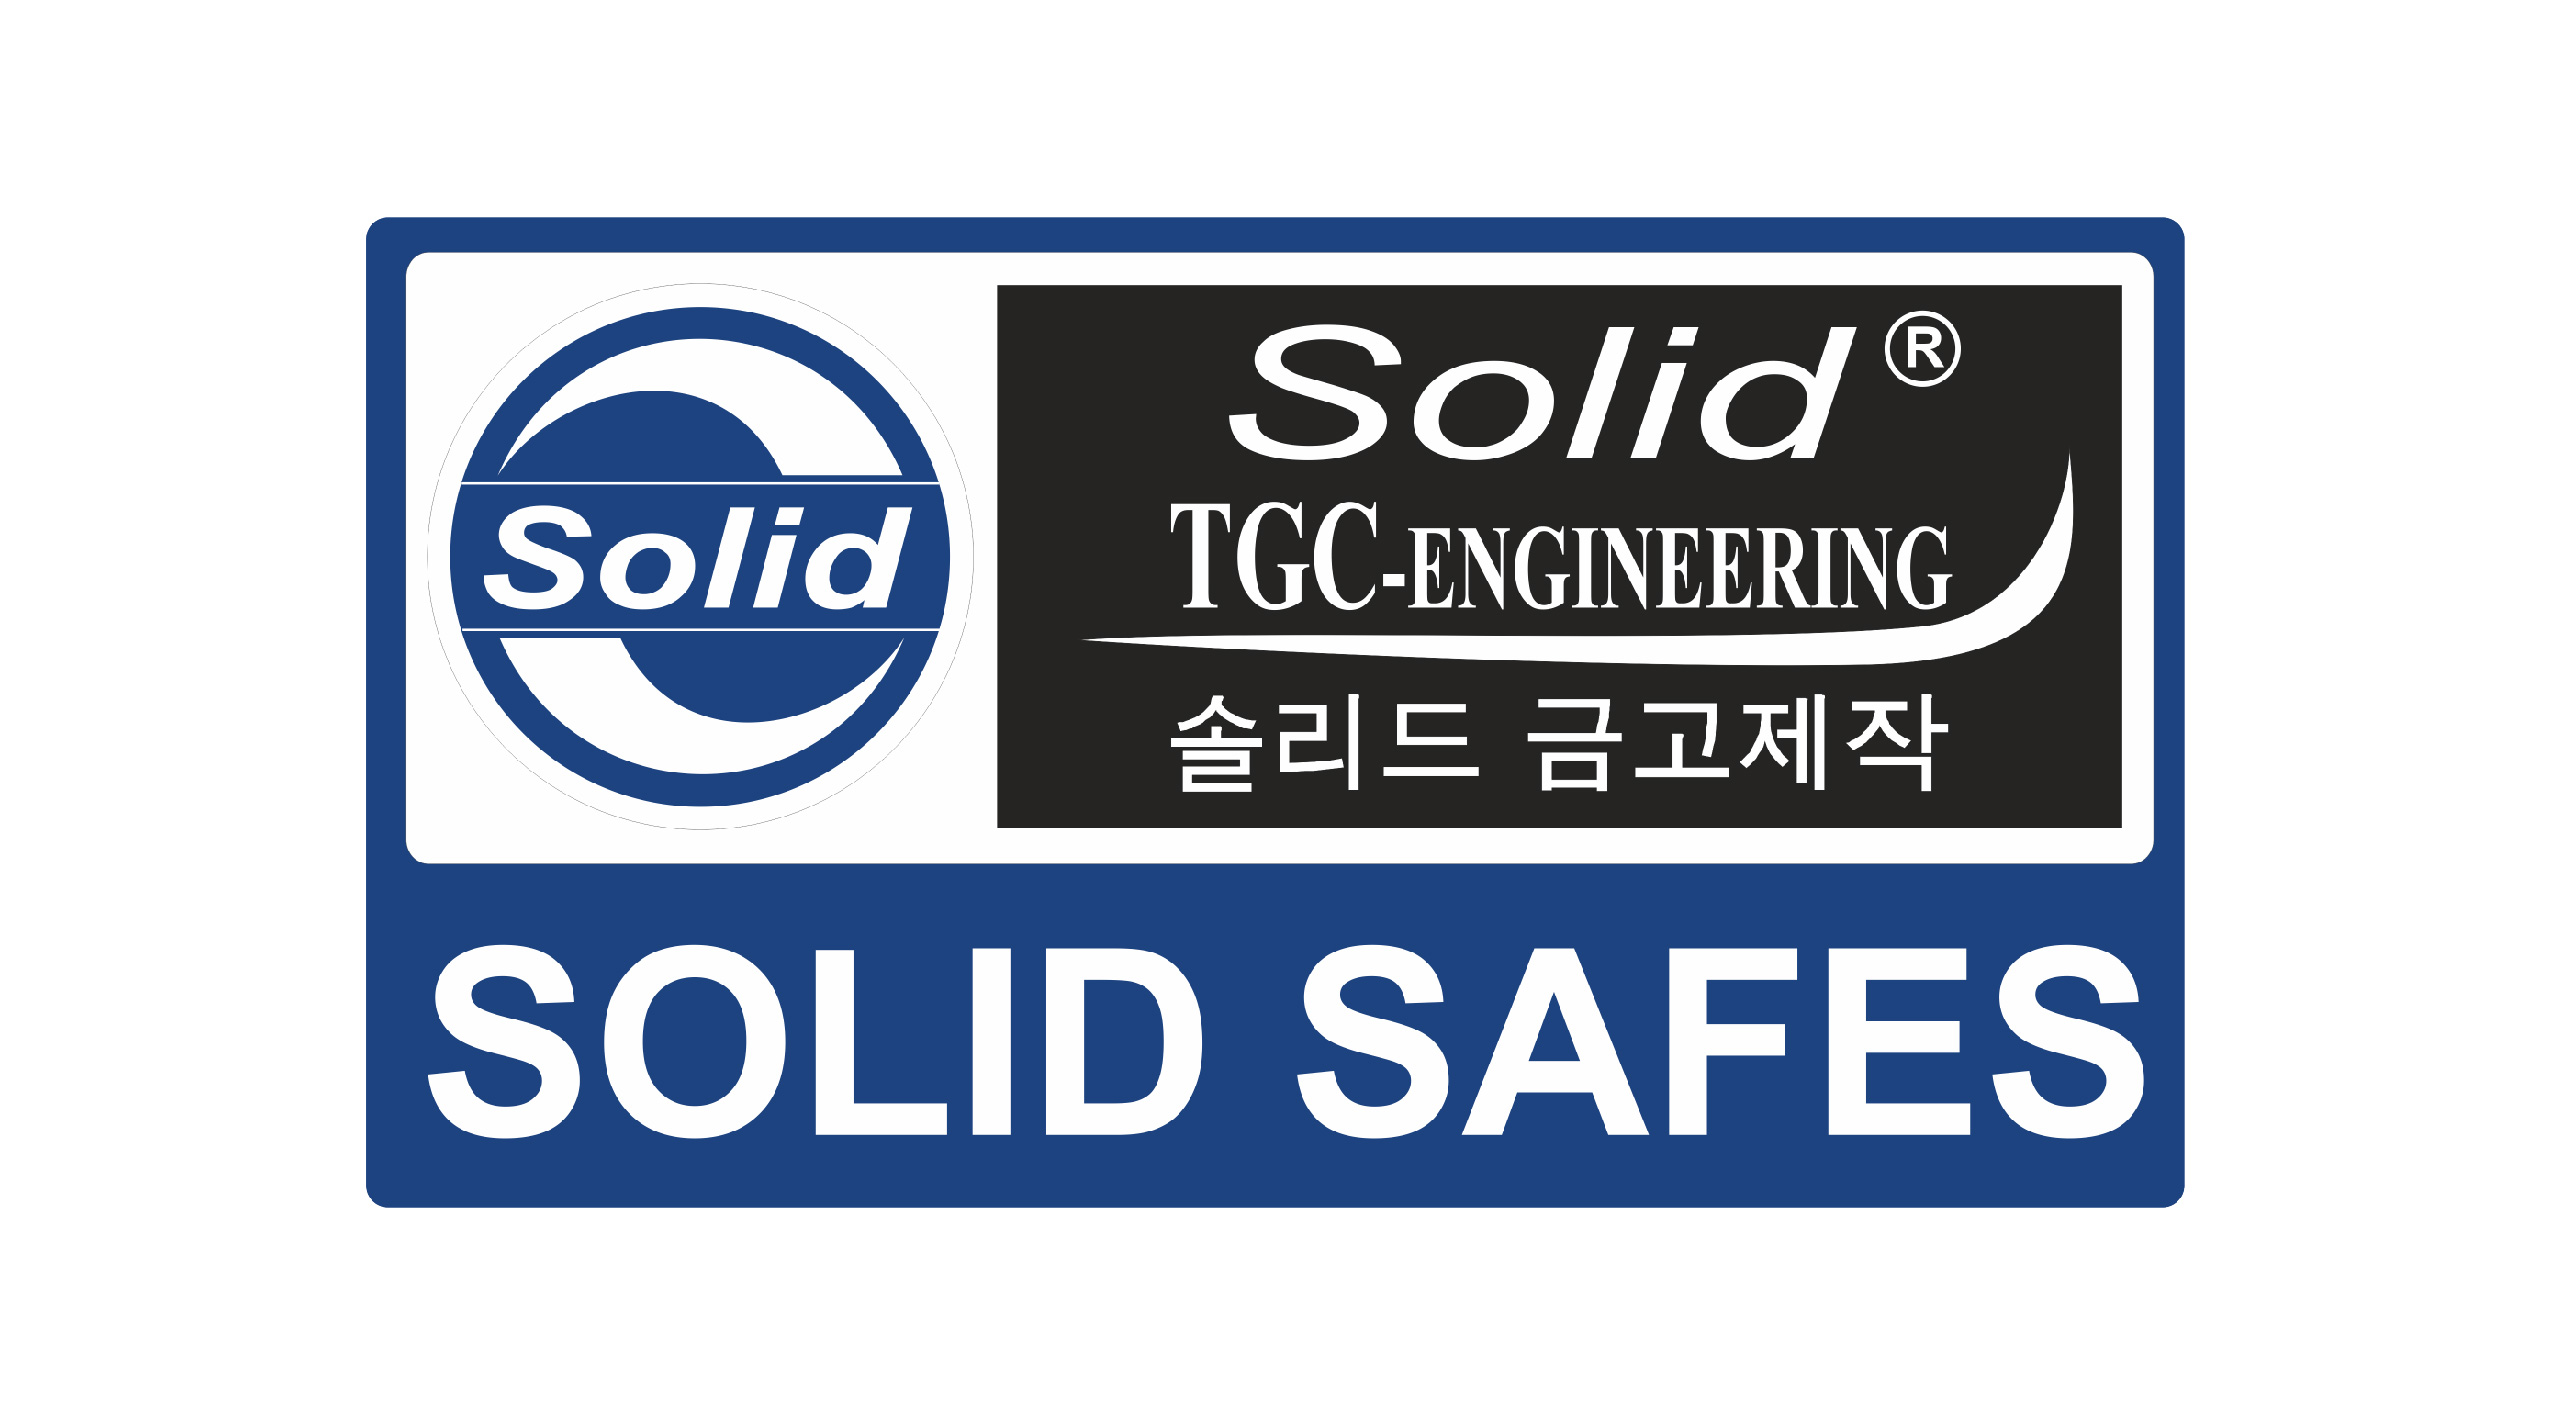 solid-vina-safe-manufacturing-and-trading-service-coltd